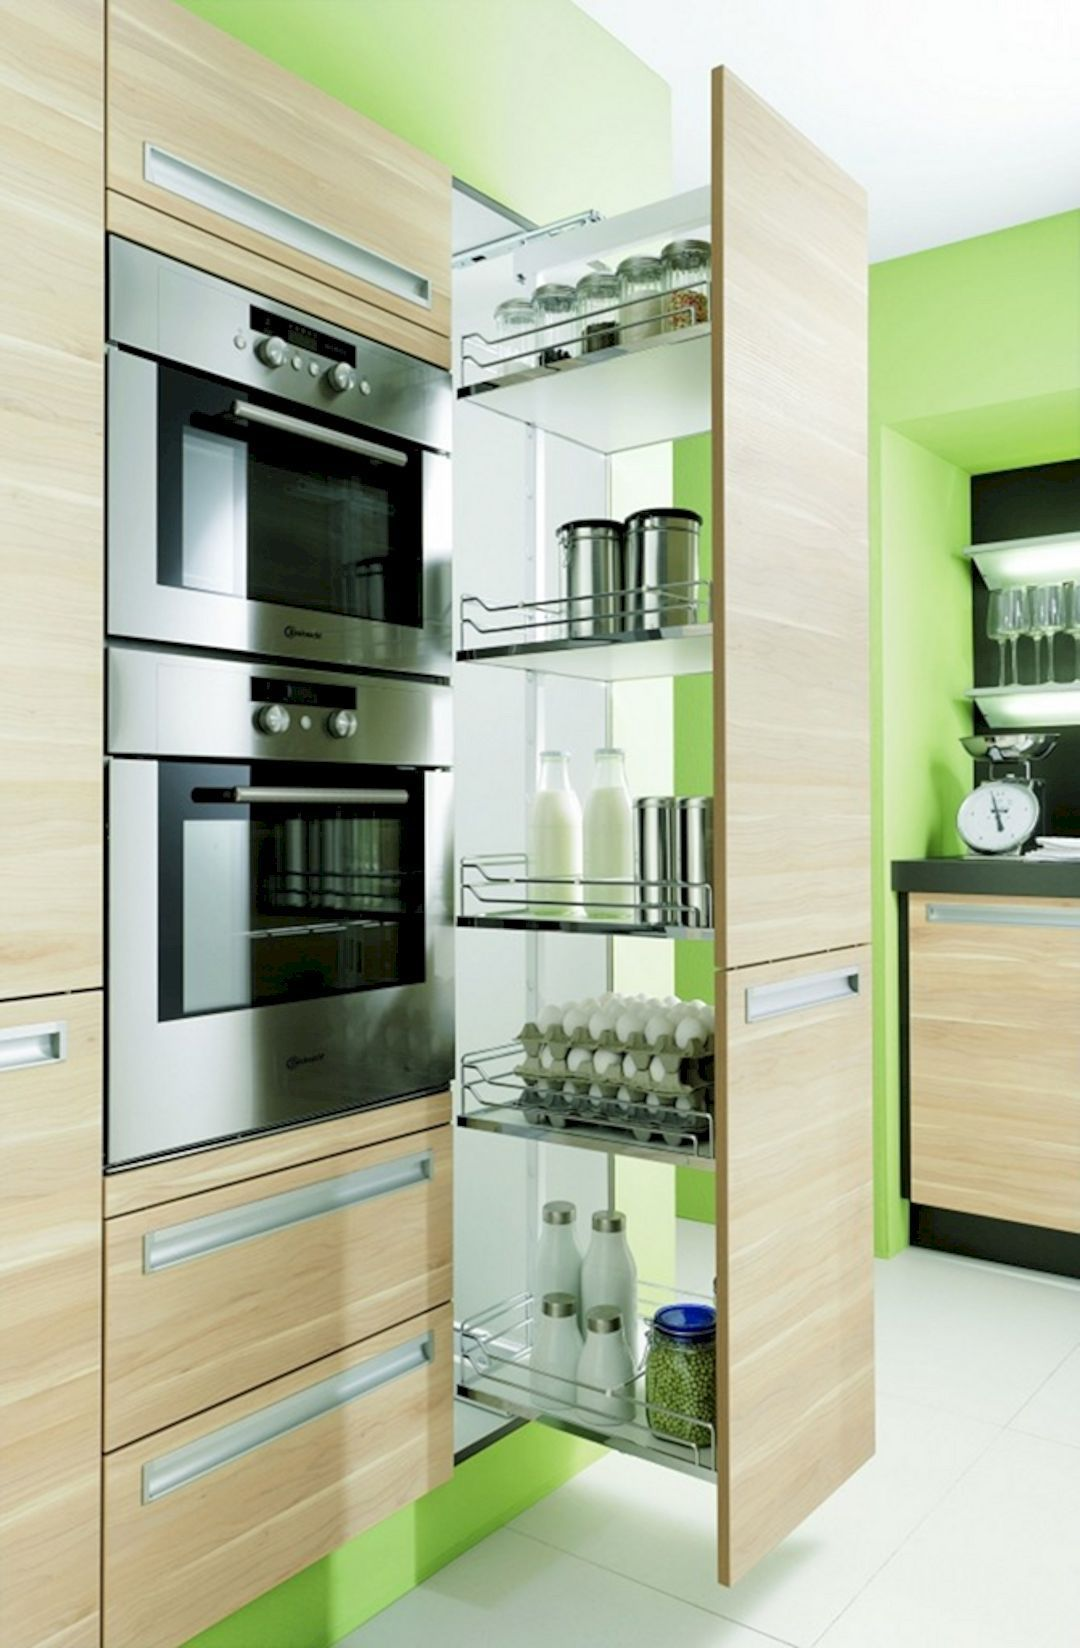 Basic kitchen cabinets  Cabinets are a rather expensive portion of a house and if theyure